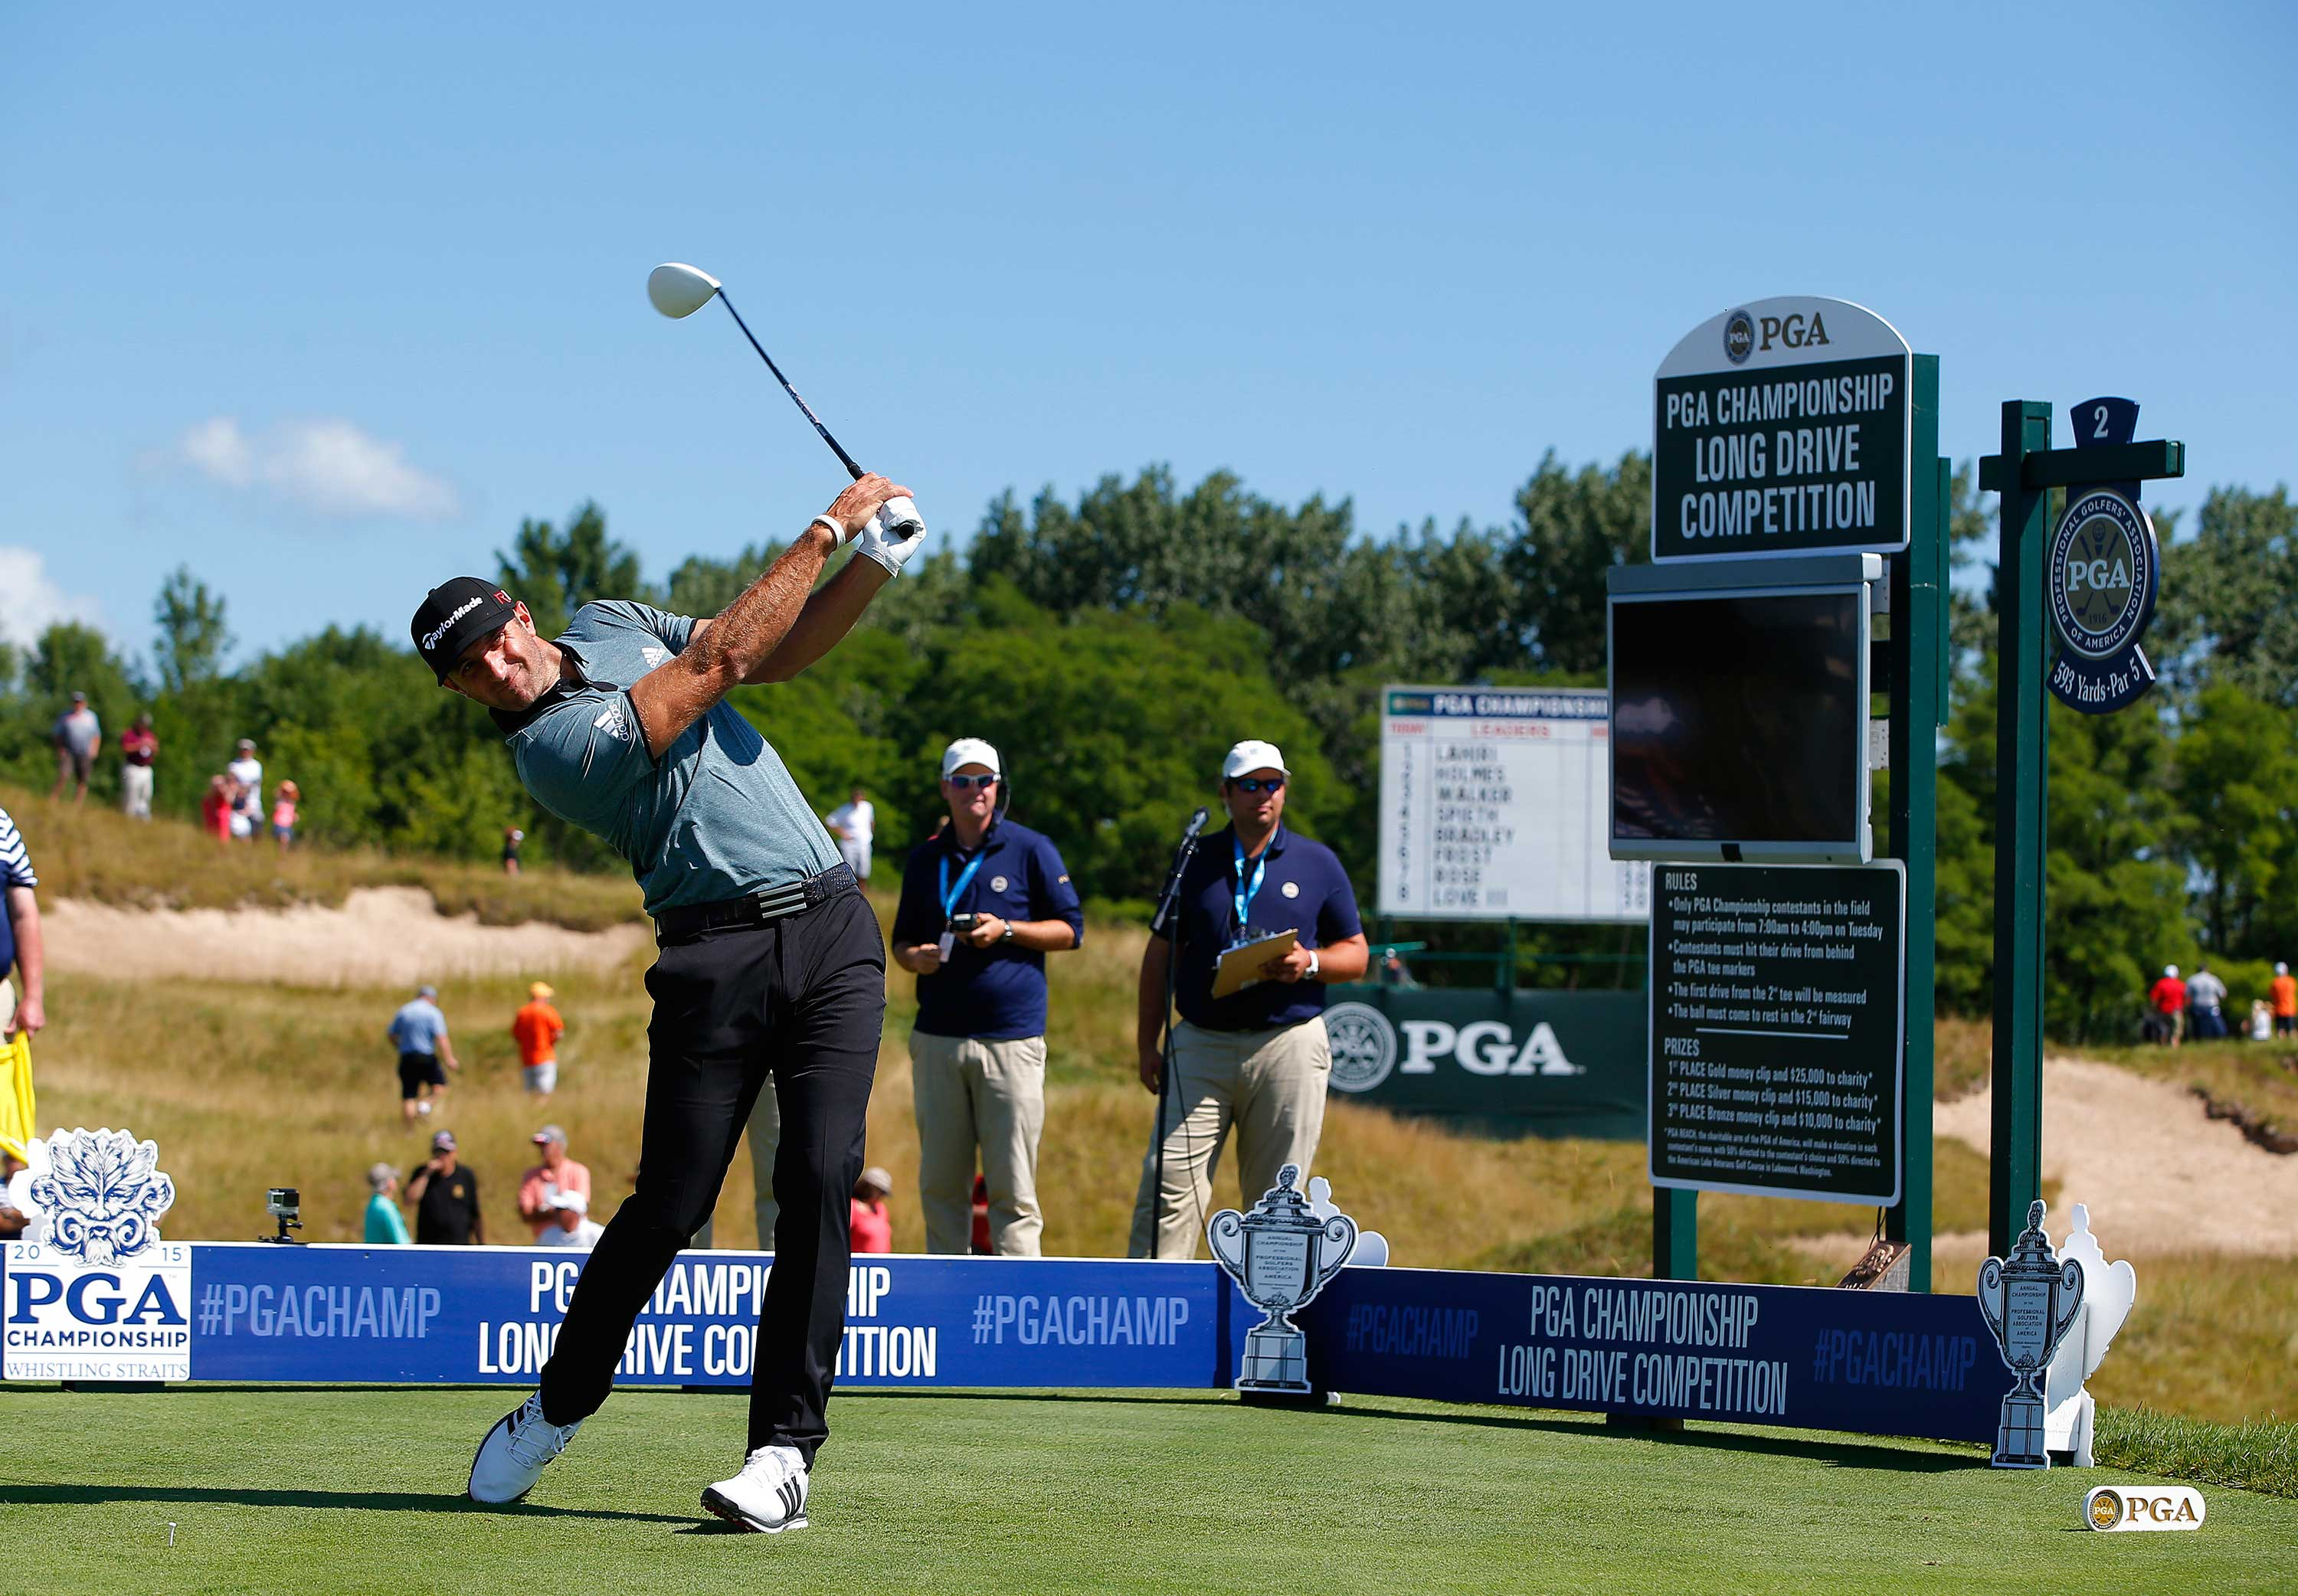 Big-hitting Dustin Johnson won the WGC-Cadillac Championship in March (Photo: Getty Images)